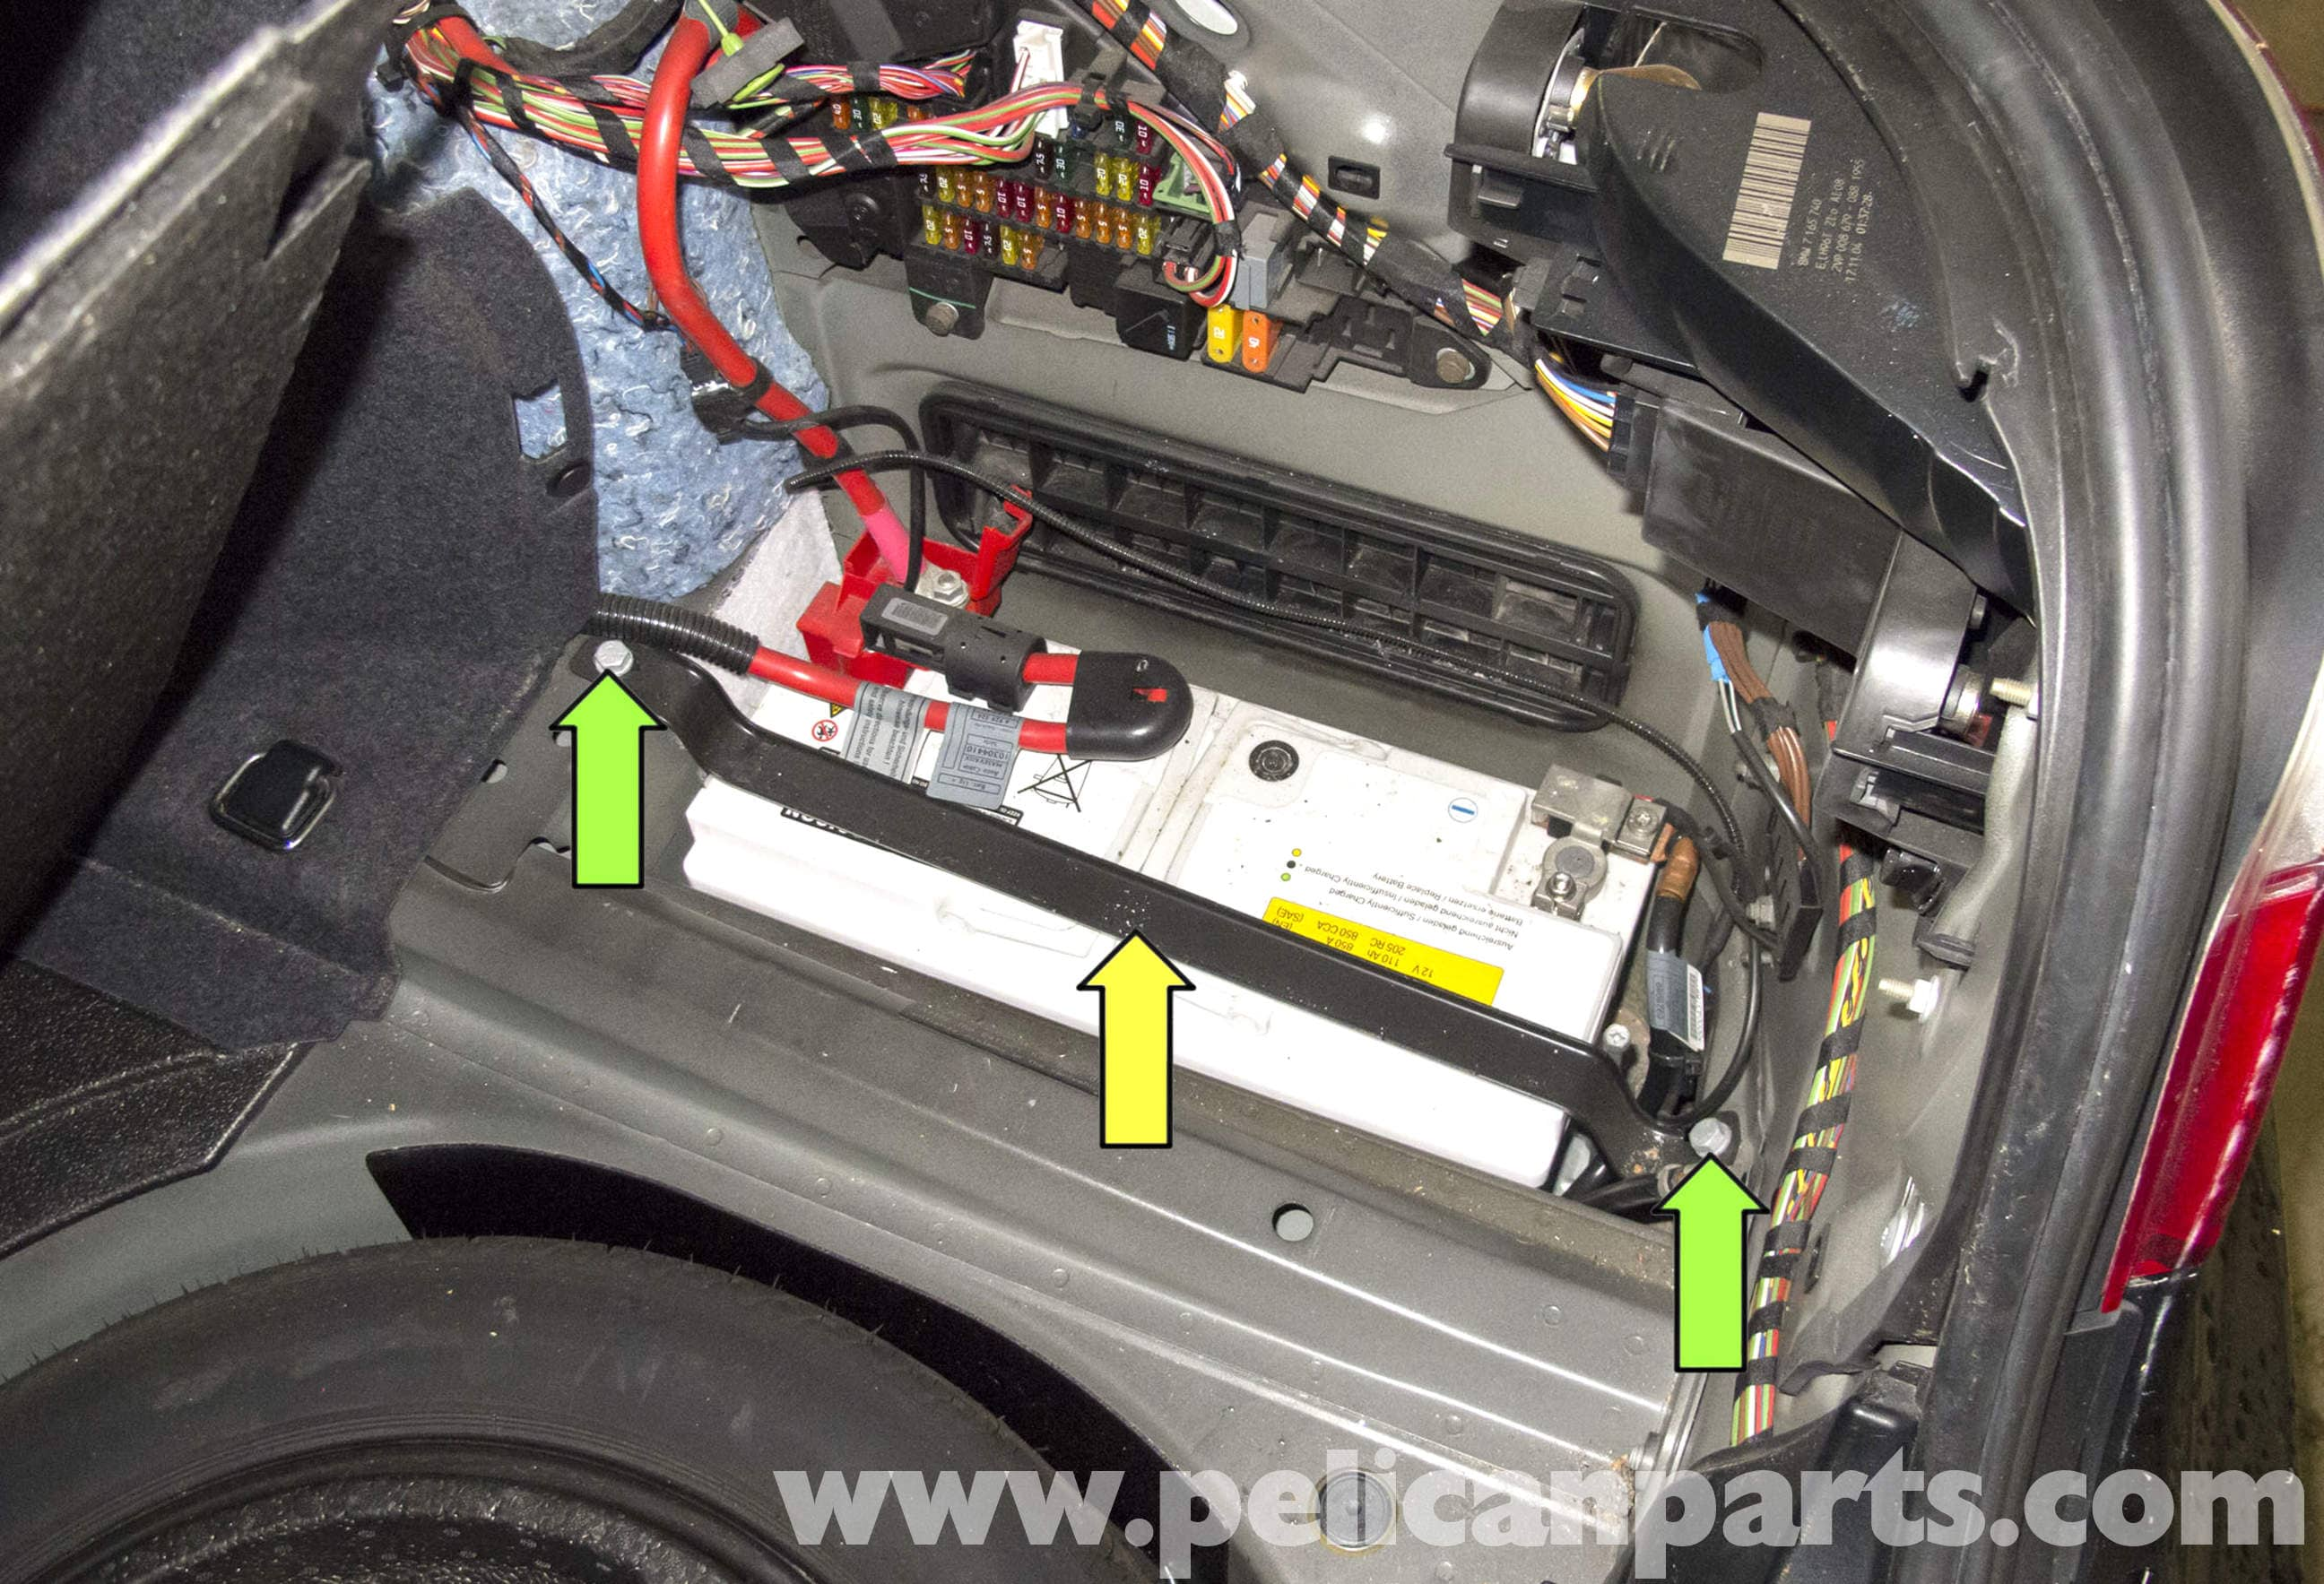 Amp Wiring For 1998 Bmw E39 Bmw E60 5 Series Battery And Connection Notes Replacement